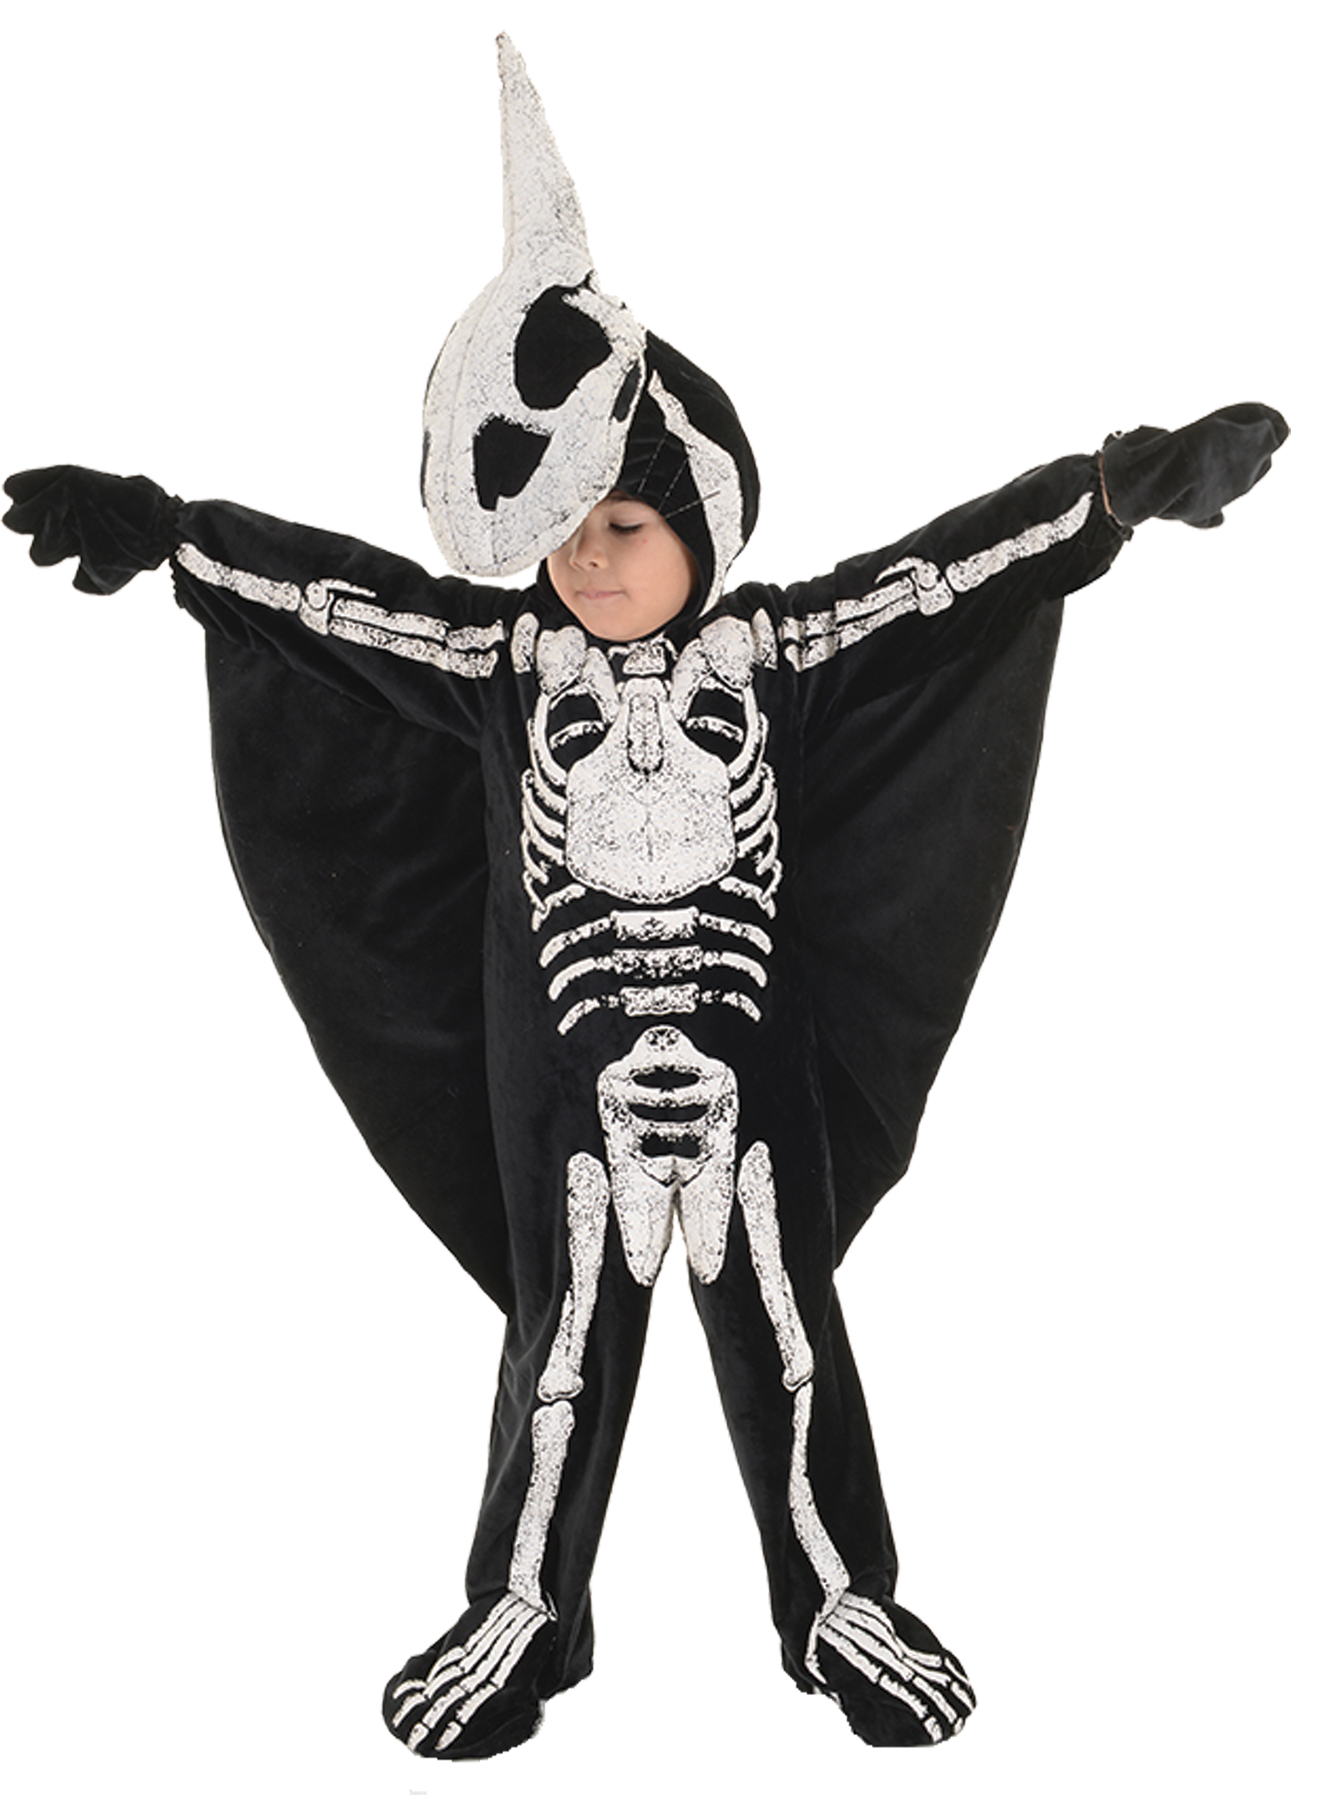 PTERADACTYL TODDLER MED 18 24